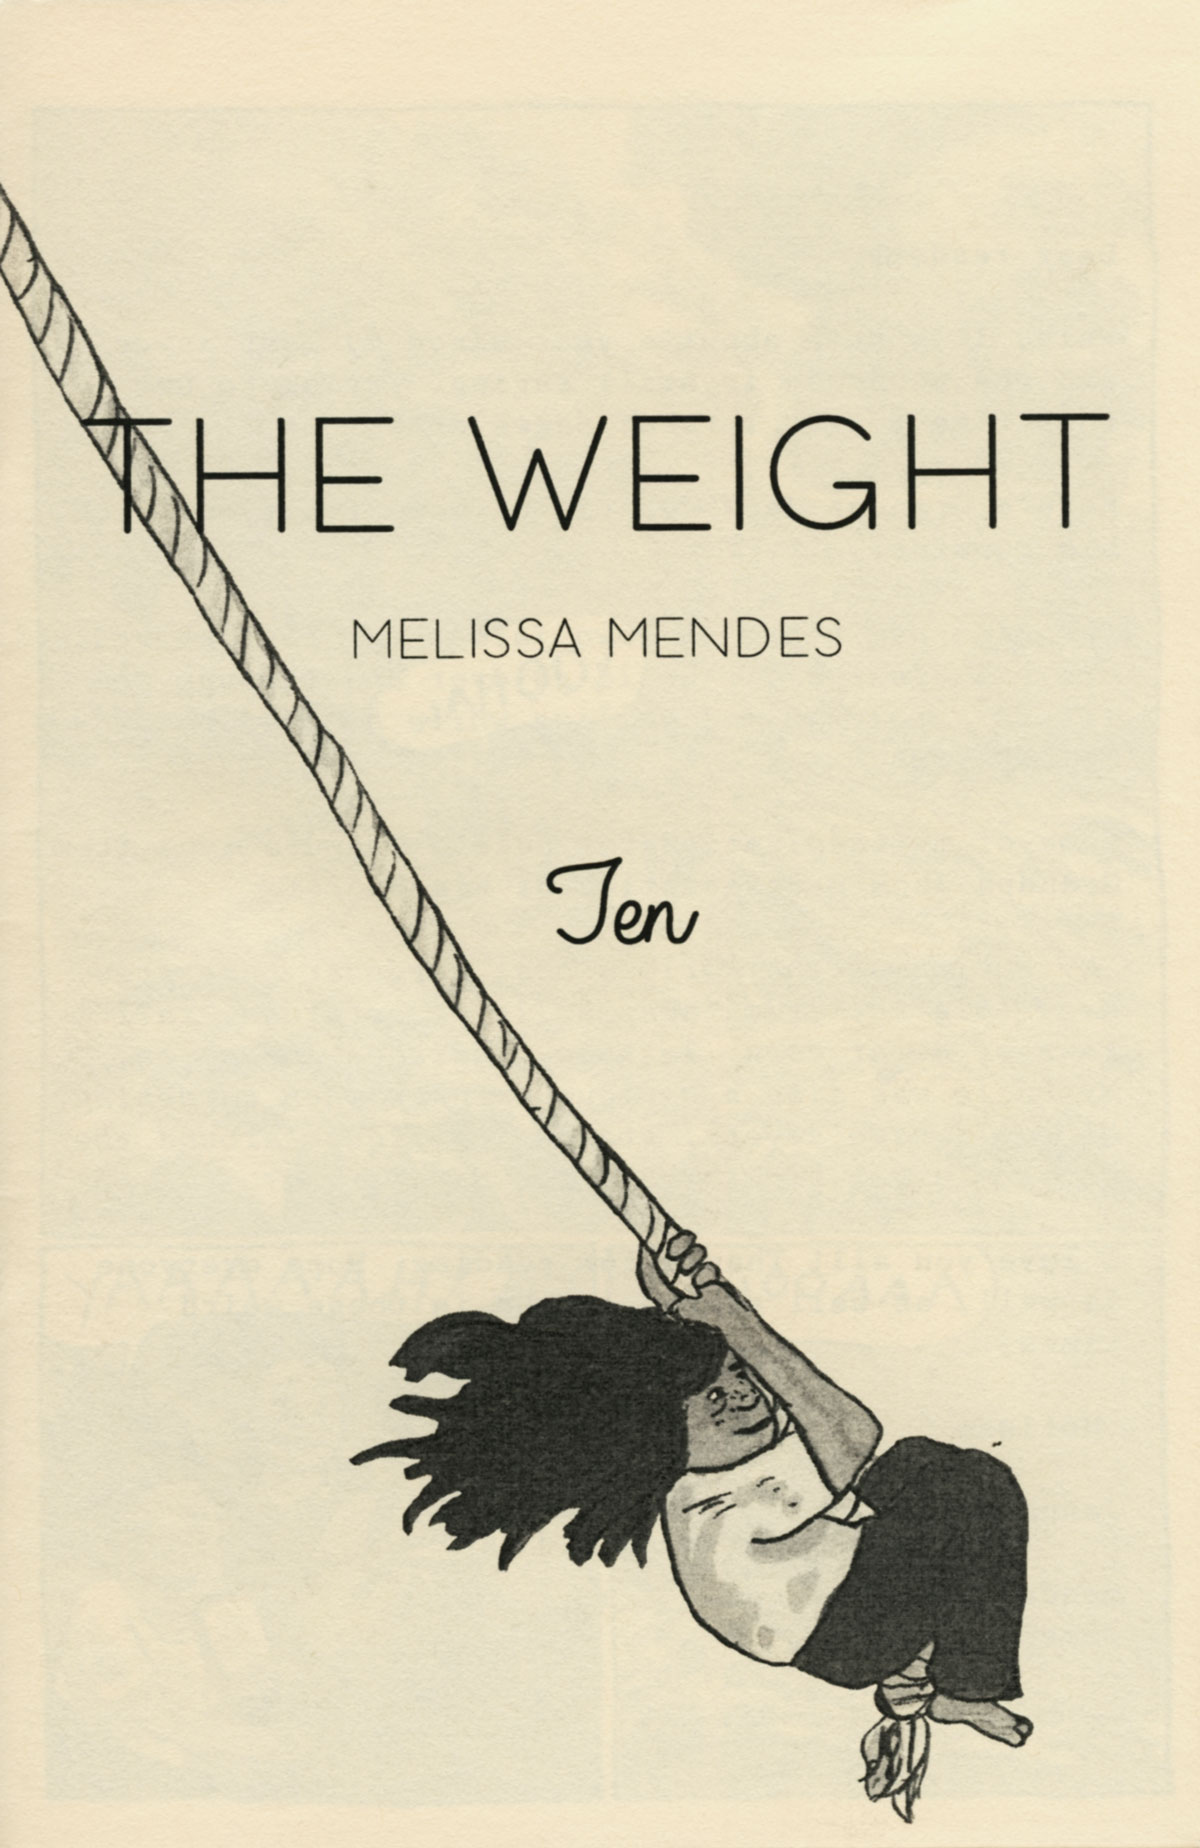 The Weight No. 10 by Melissa Mendes